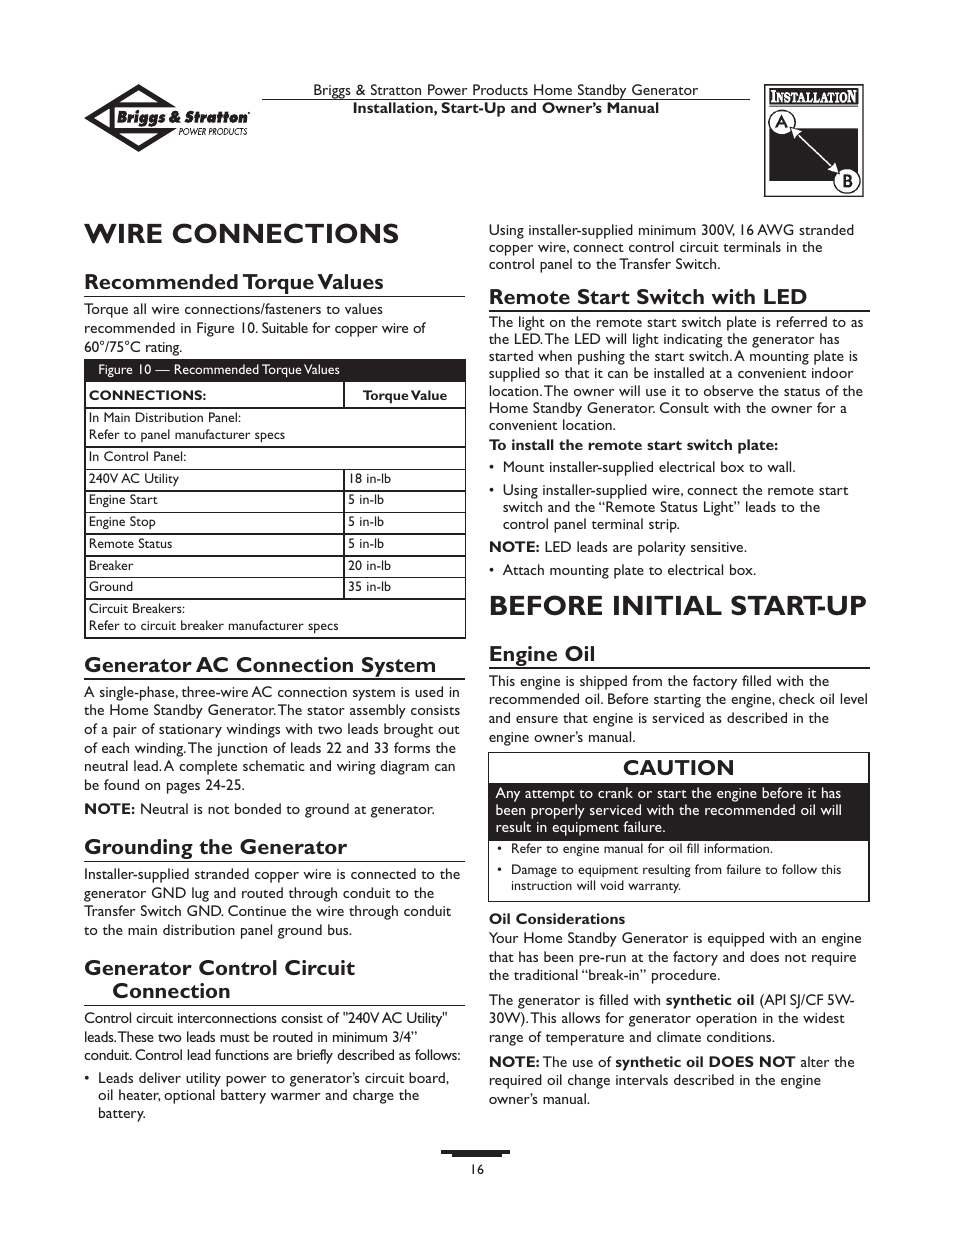 medium resolution of wire connections before initial start up recommended torque values briggs stratton 01975 0 user manual page 16 80